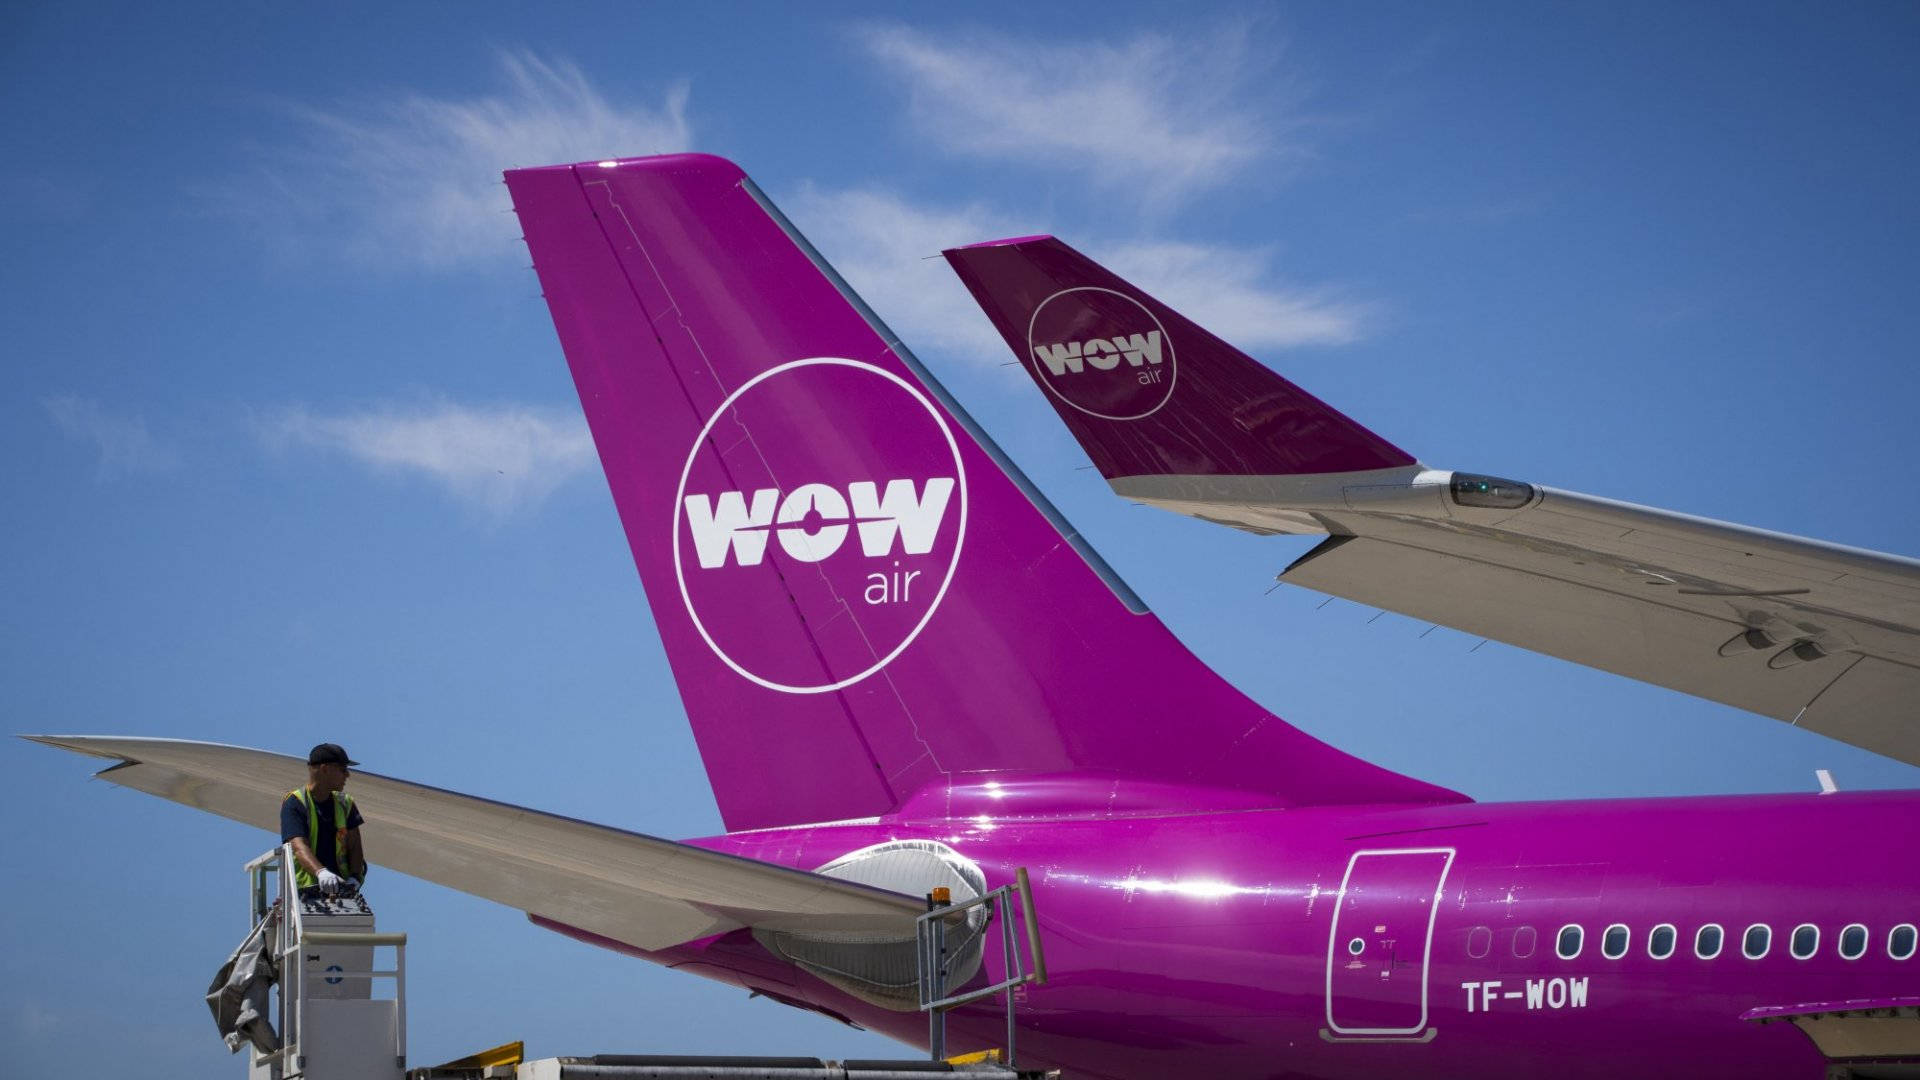 Wow Air Abruptly Ceased Operations and Left Passengers Stranded. It Revealed This 1 Crucial Mistake